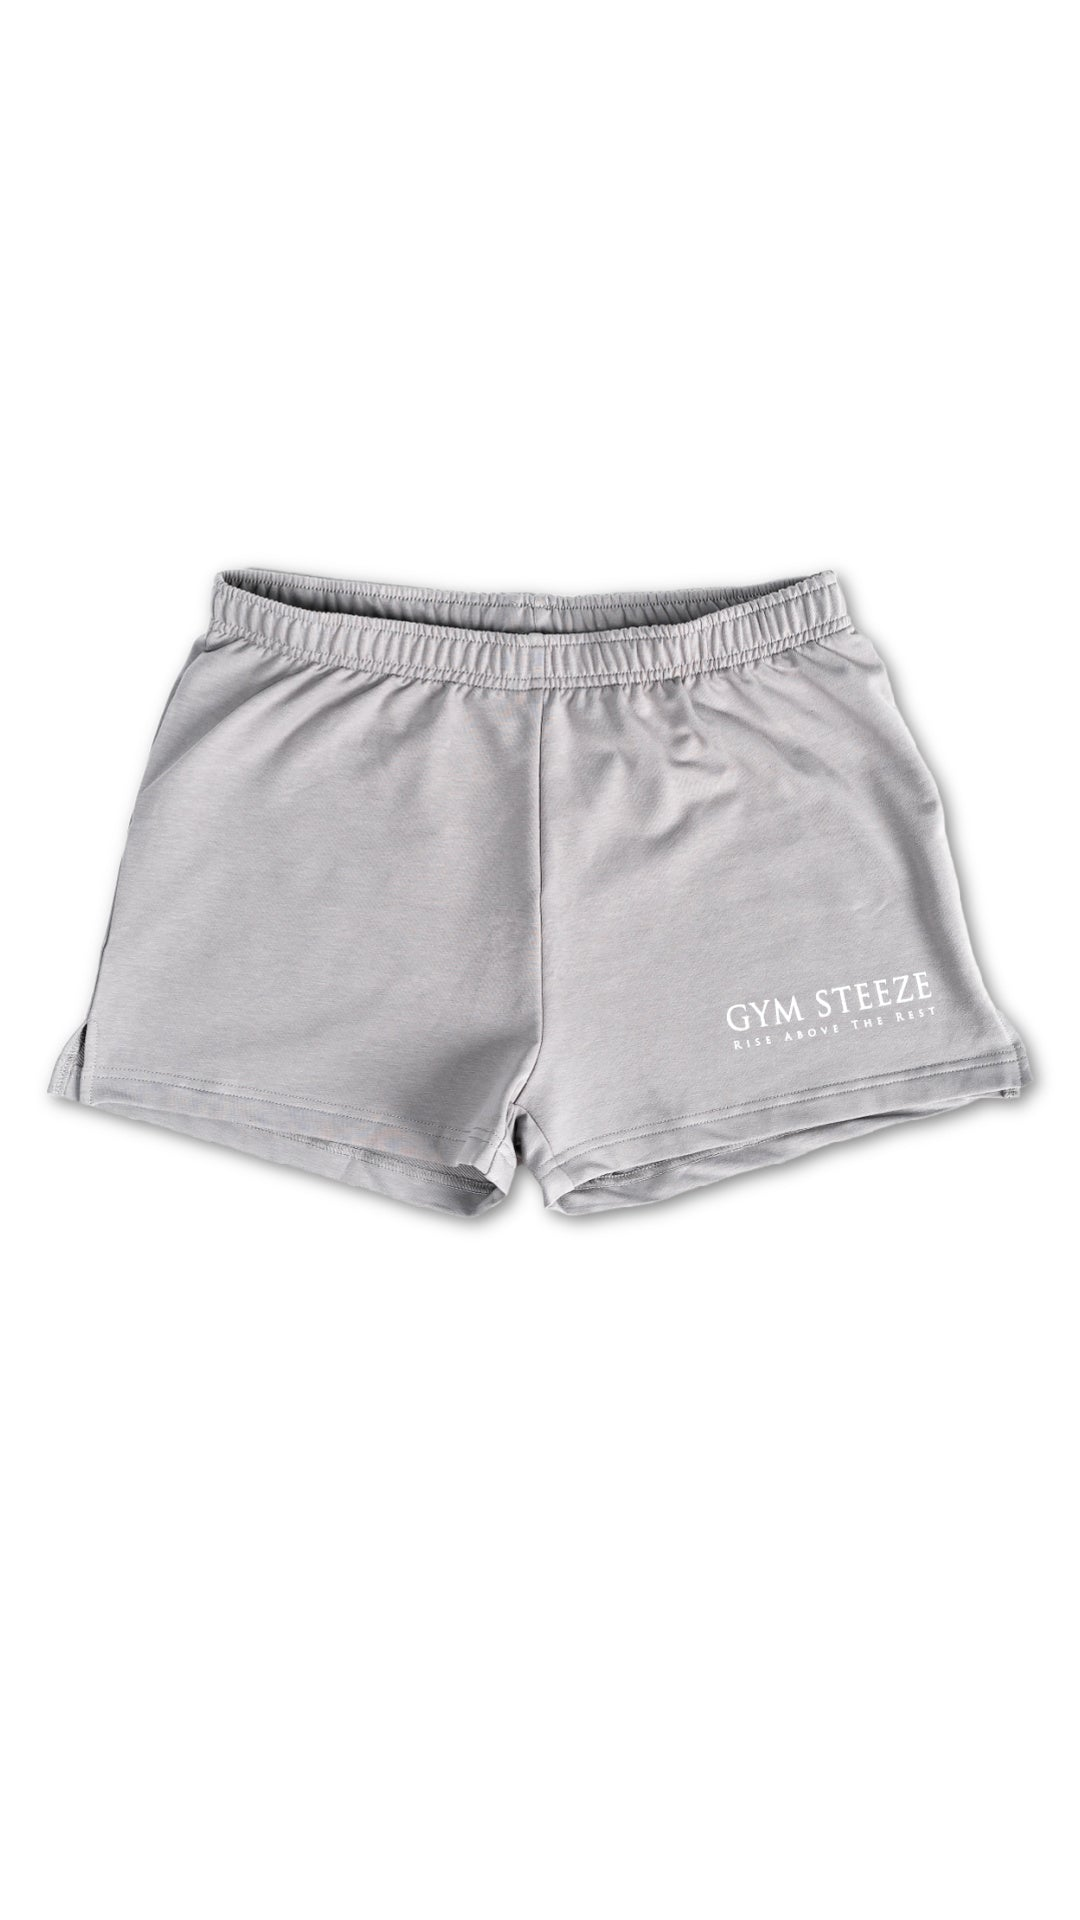 GYM STEEZE SHORT SHORTS - STONE GREY